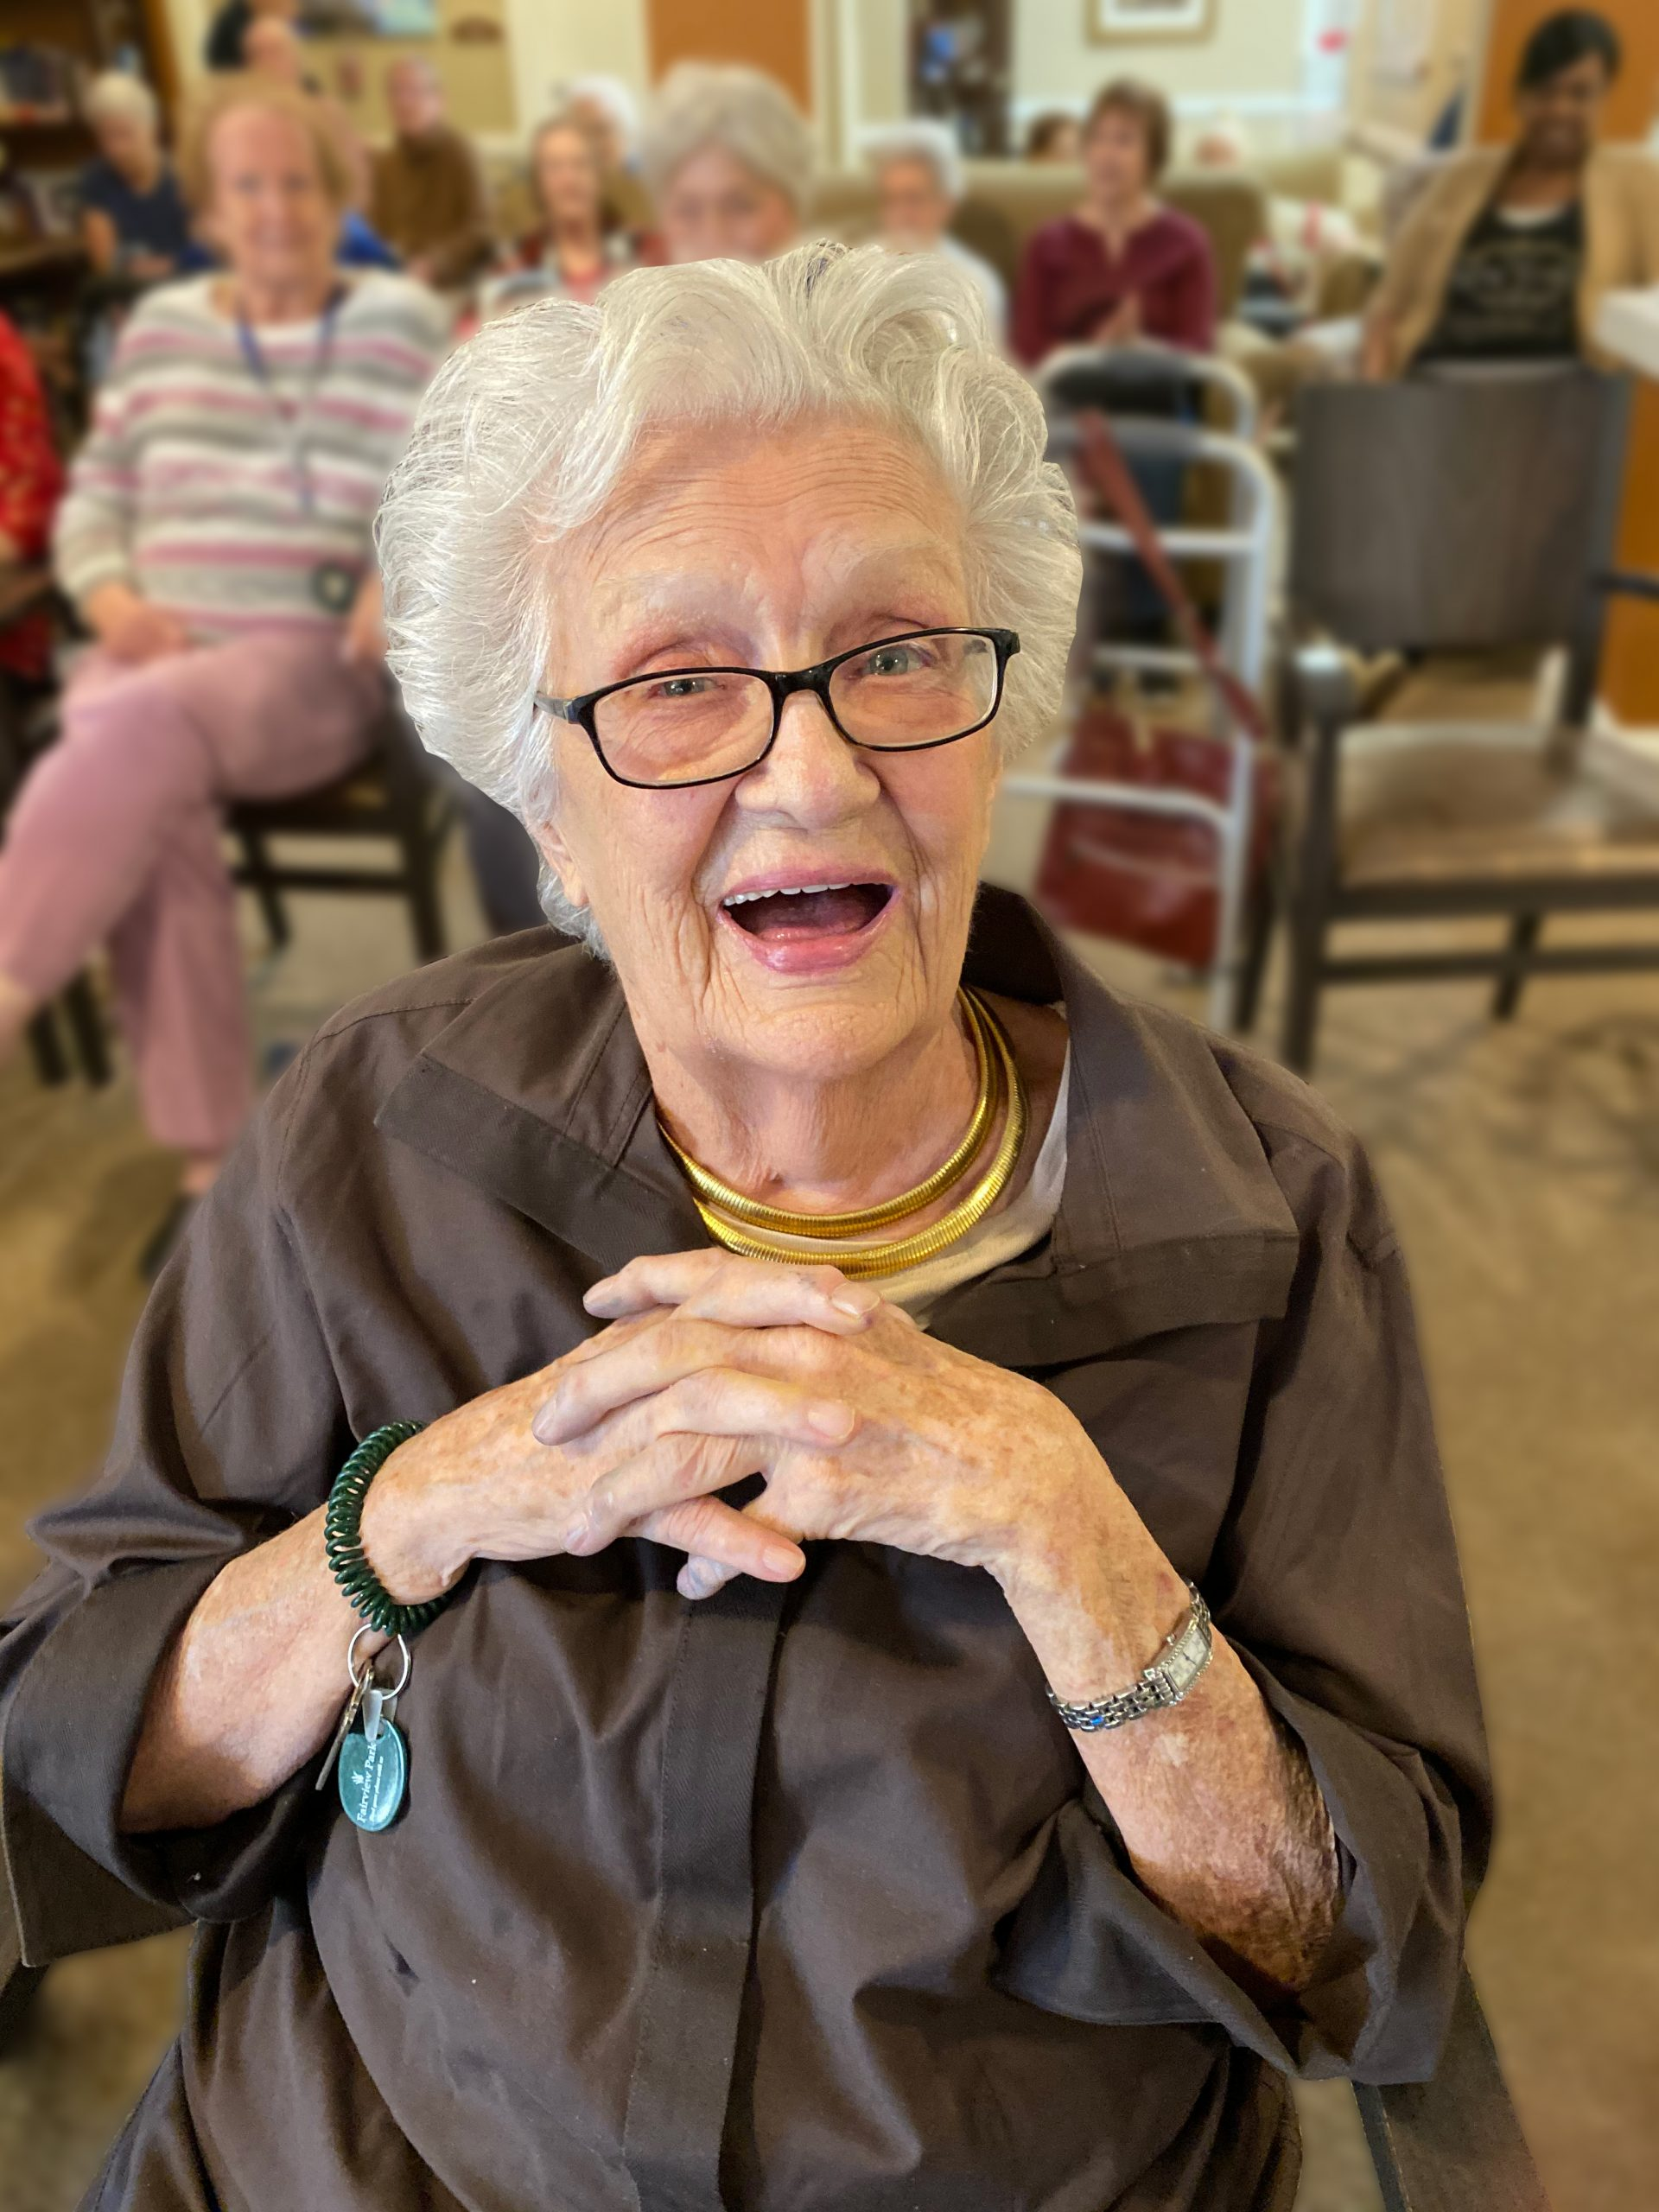 Fairview Park   Senior woman in crowd smiling